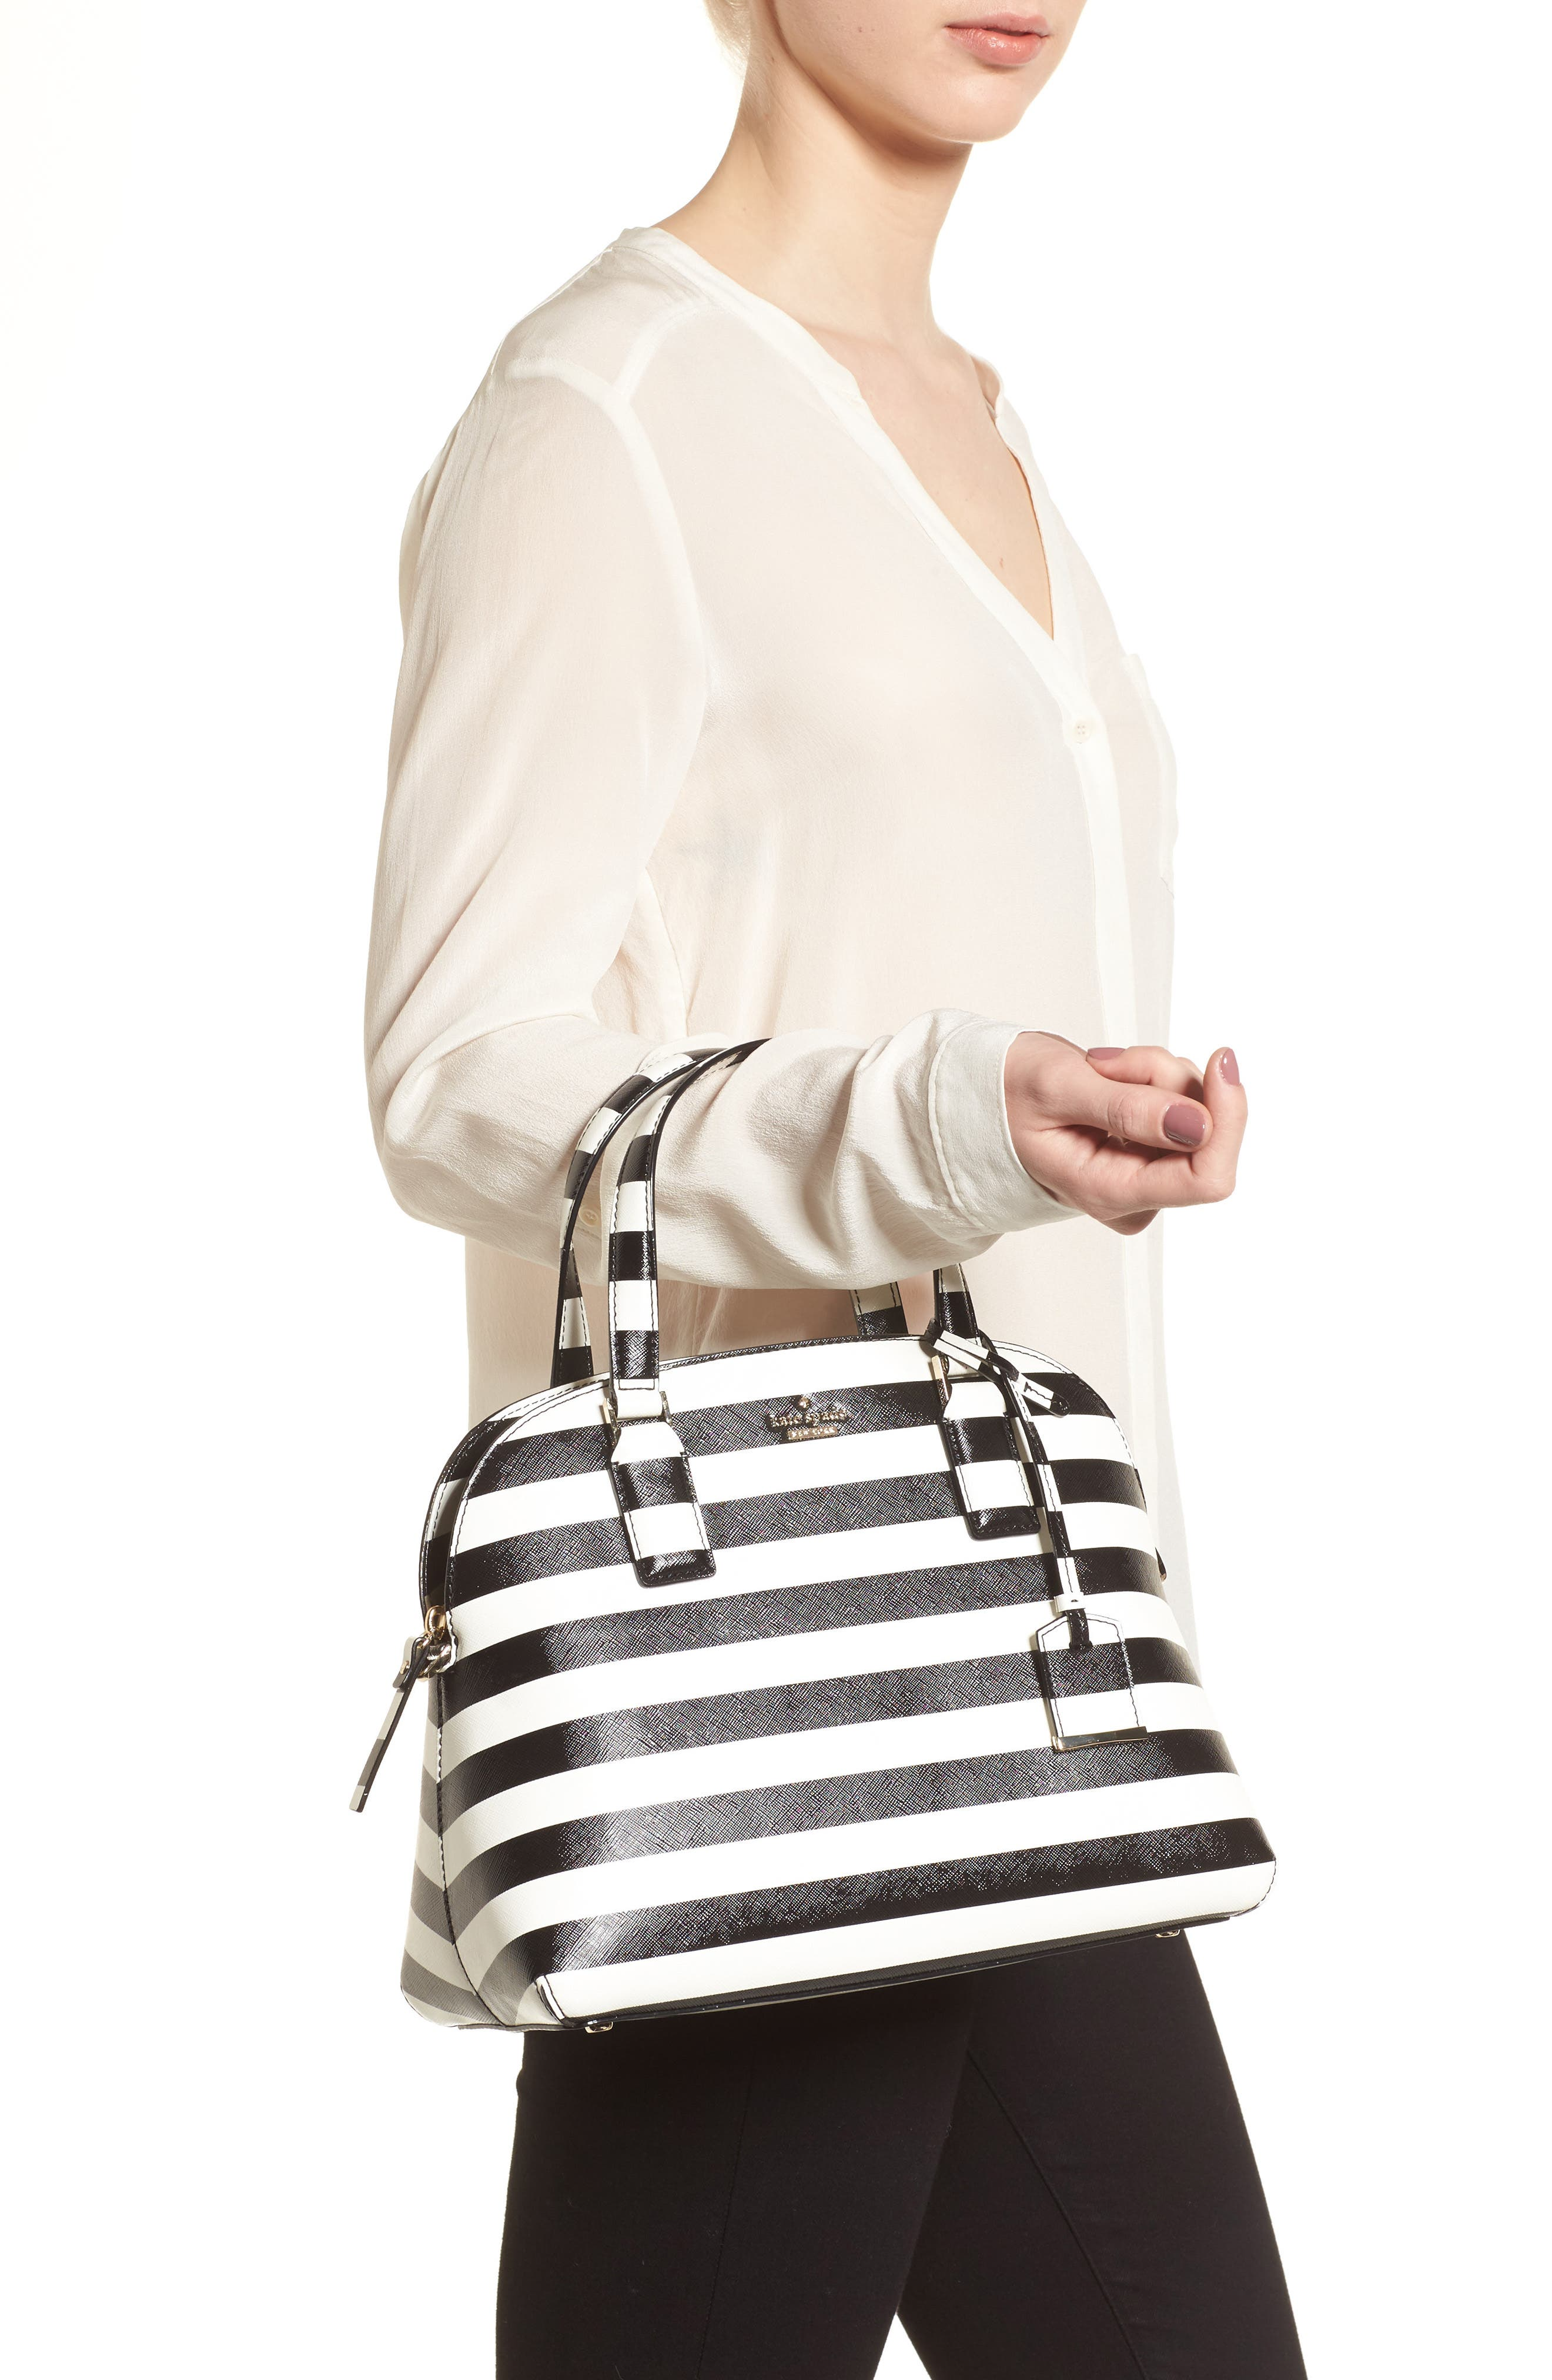 cameron street - lottie stripe satchel,                             Alternate thumbnail 2, color,                             Black/ Cream